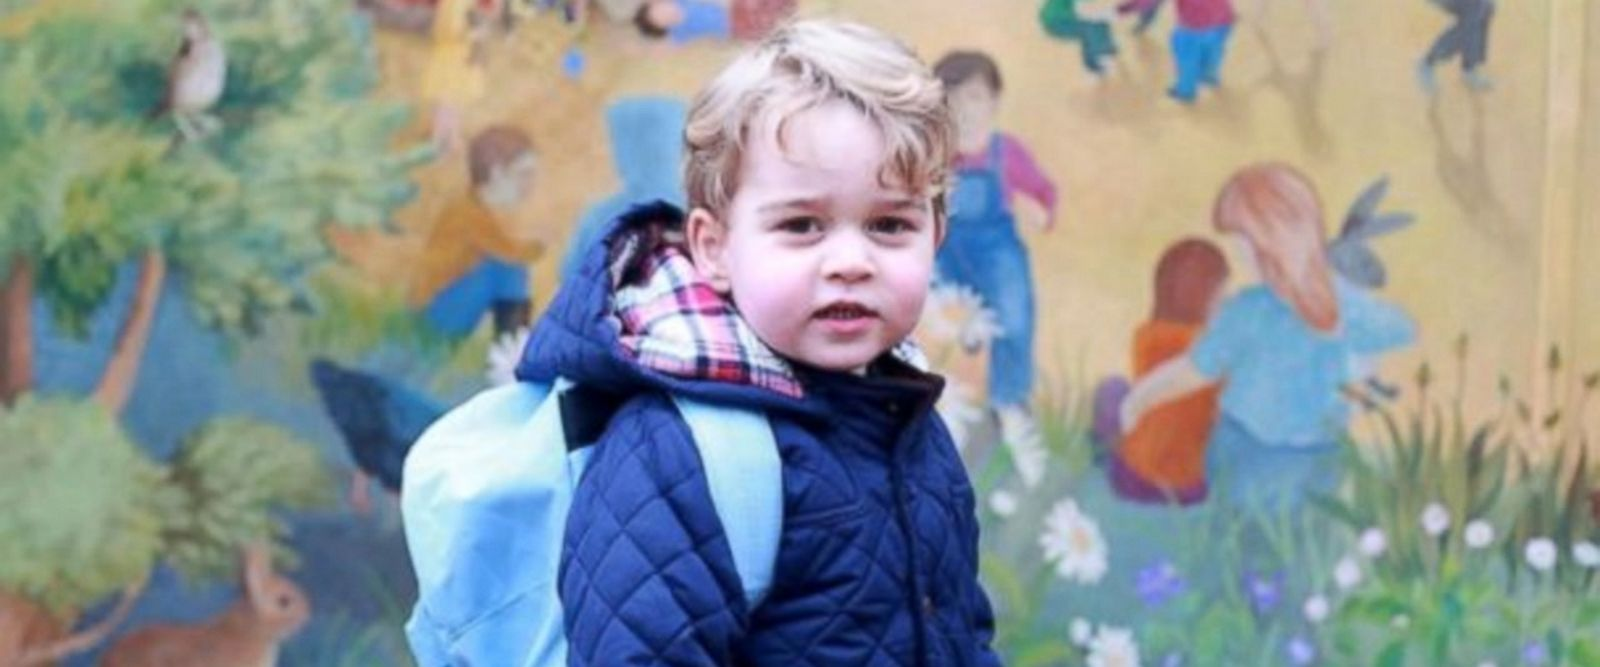 VIDEO: George, 3, will attend Thomas's Battersea School in London in September, Kensington Palace announced.